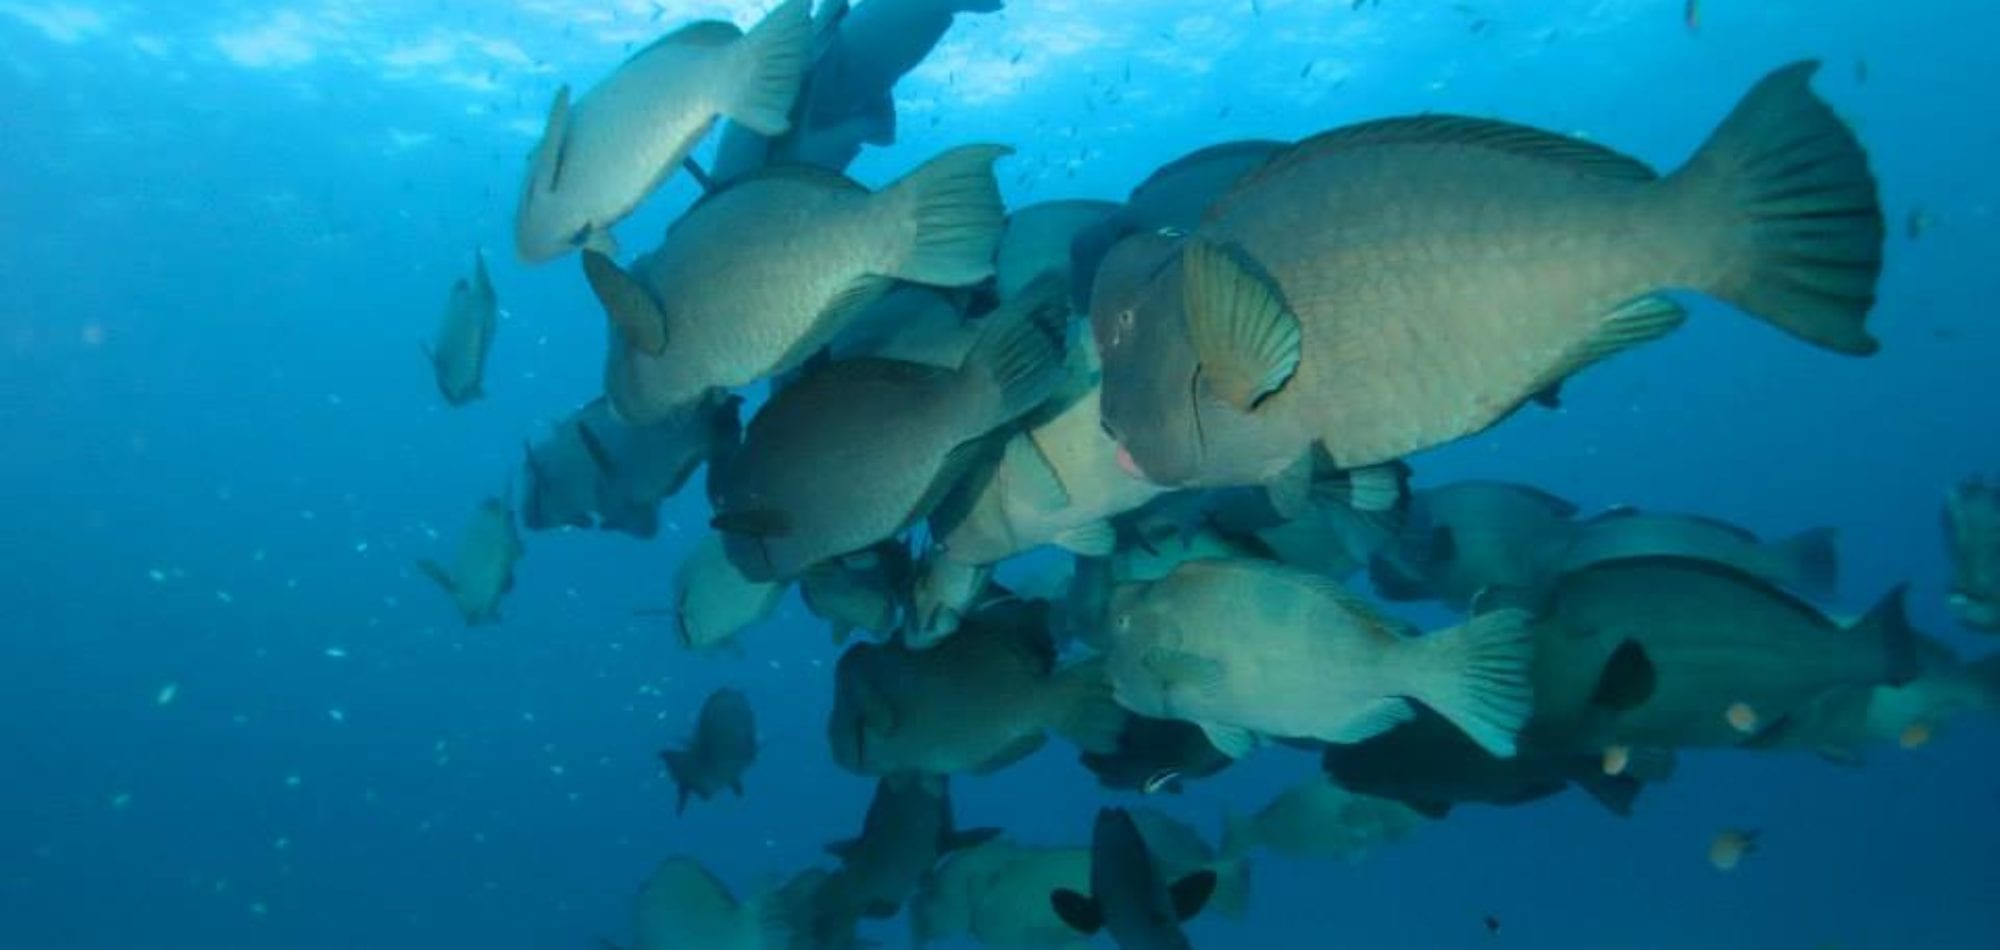 Cairns scuba diving day tour - Bumphead parrot fish, Great Barrier Reef